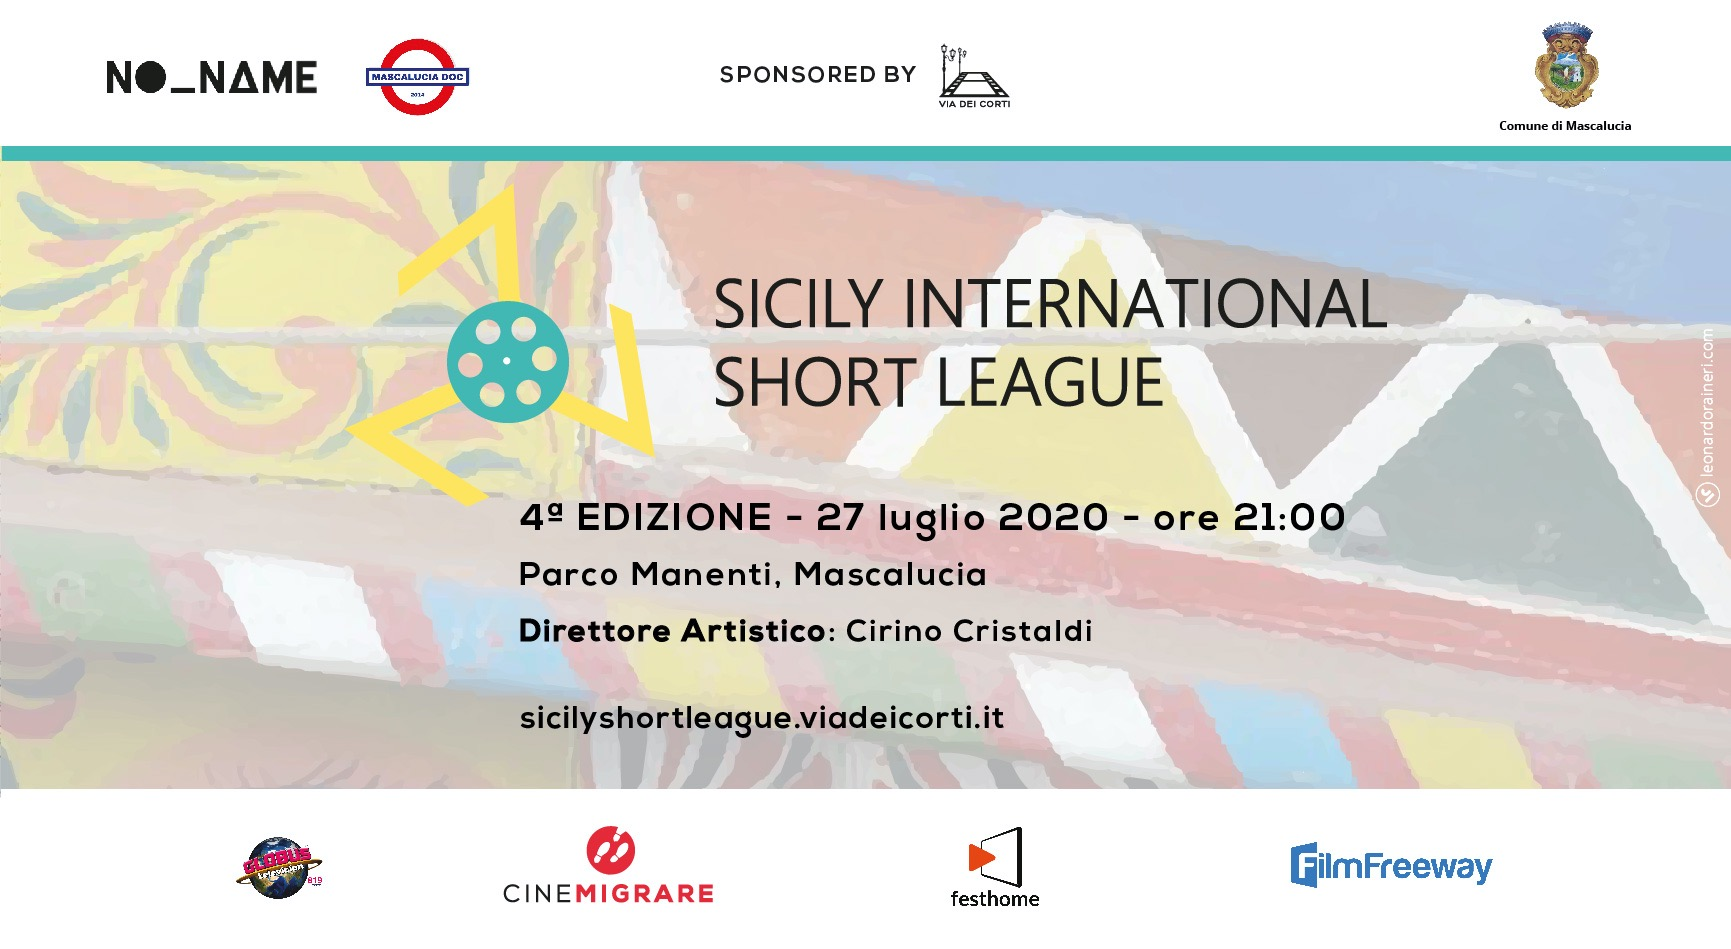 sicilyinternationshortleague-1594047338.jpg